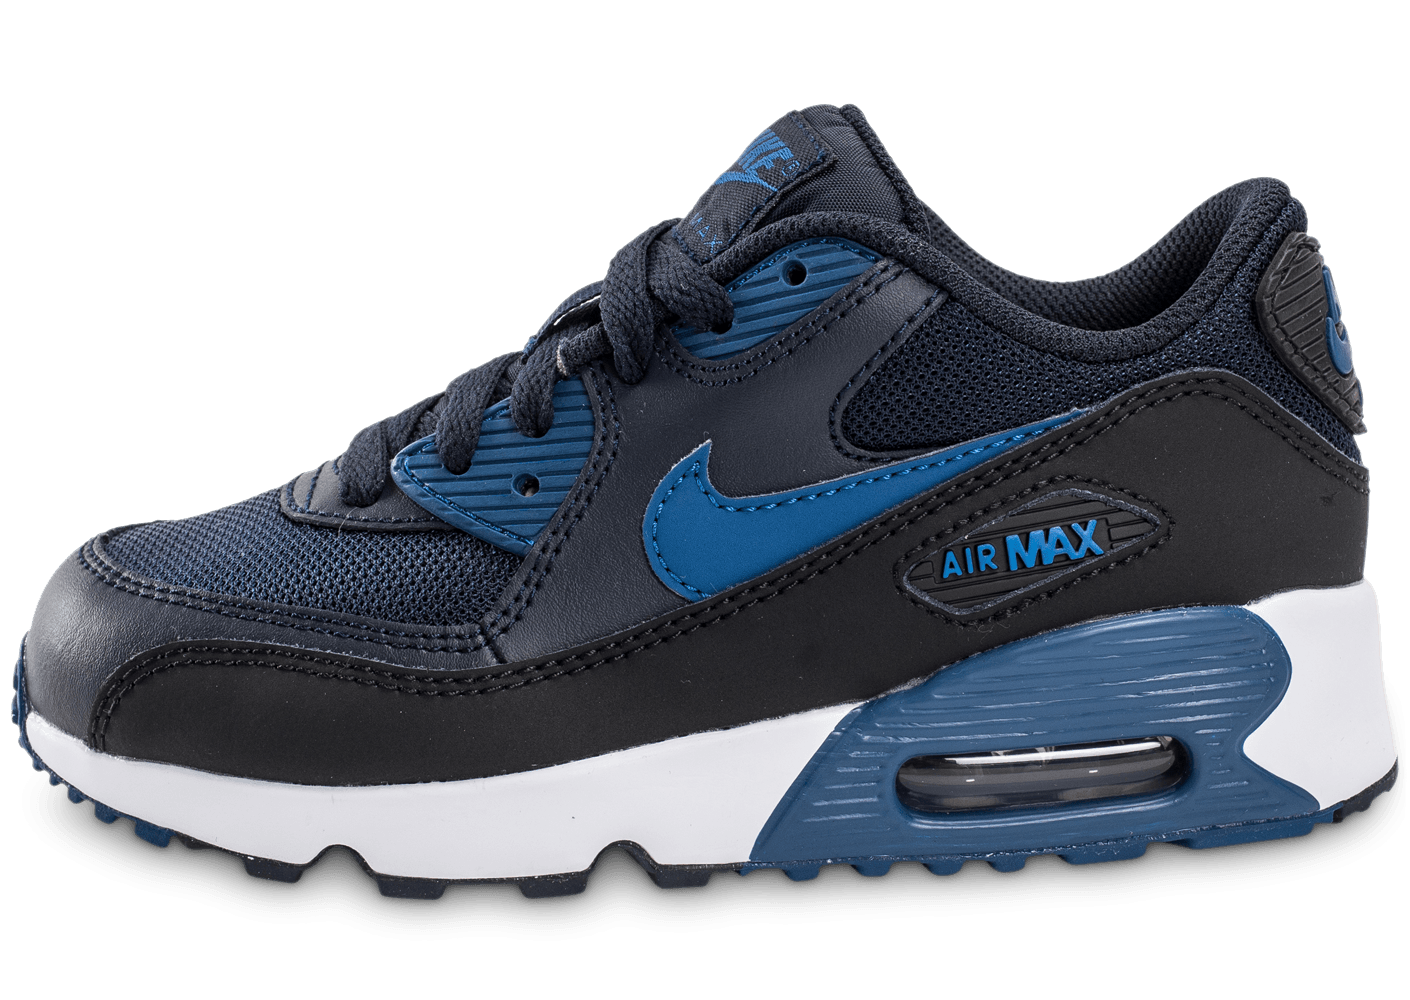 nike air max bleu marine enfant garcon. Black Bedroom Furniture Sets. Home Design Ideas